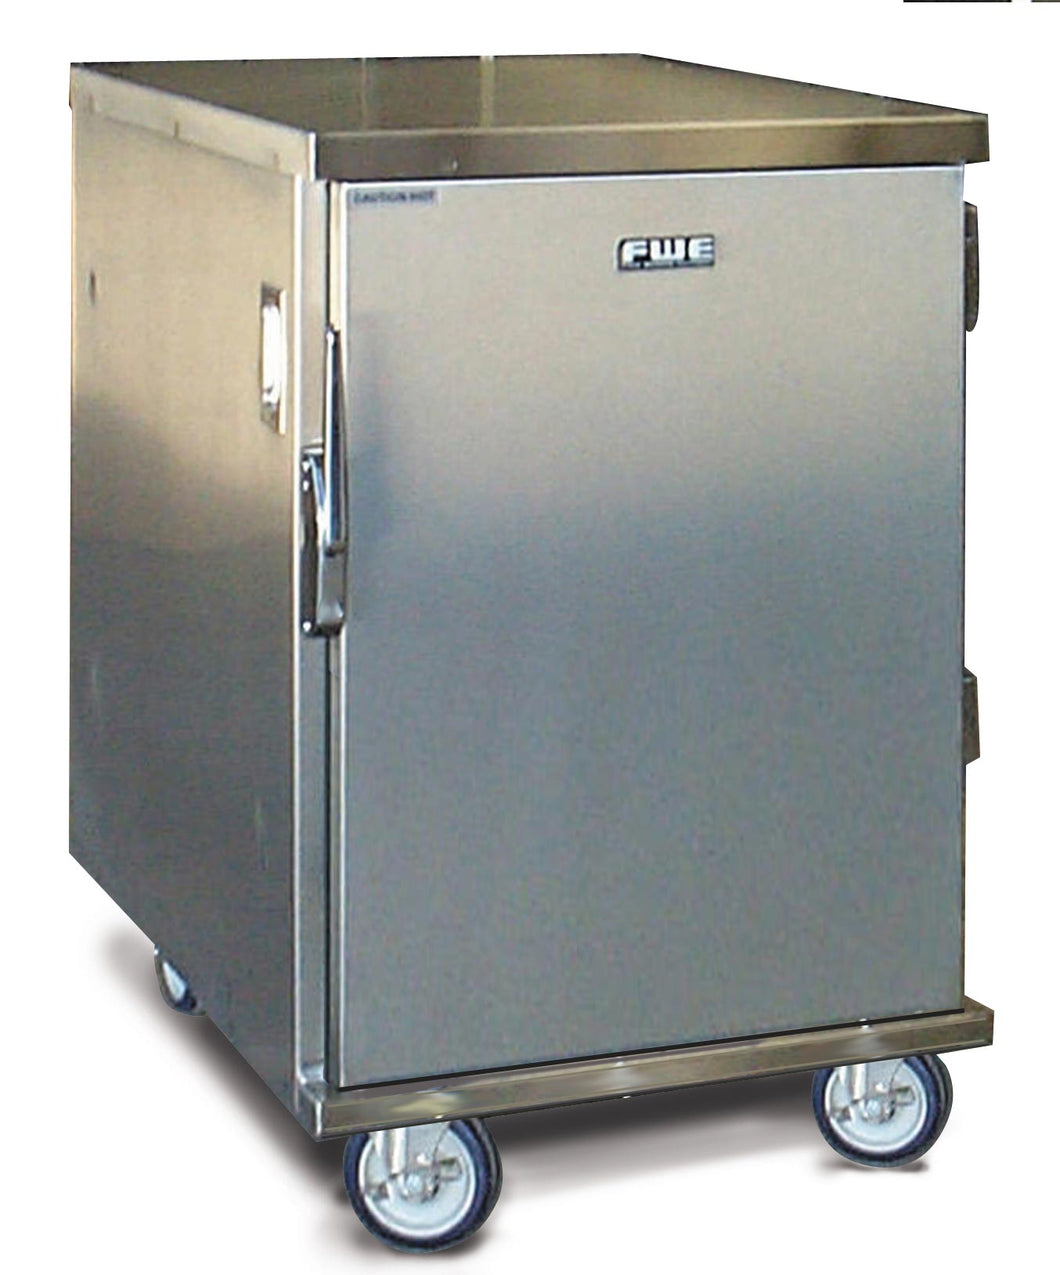 Enclosed Utility Transport for Universal Trays, Pans, and Gastro-Norm - ETC-UA-5